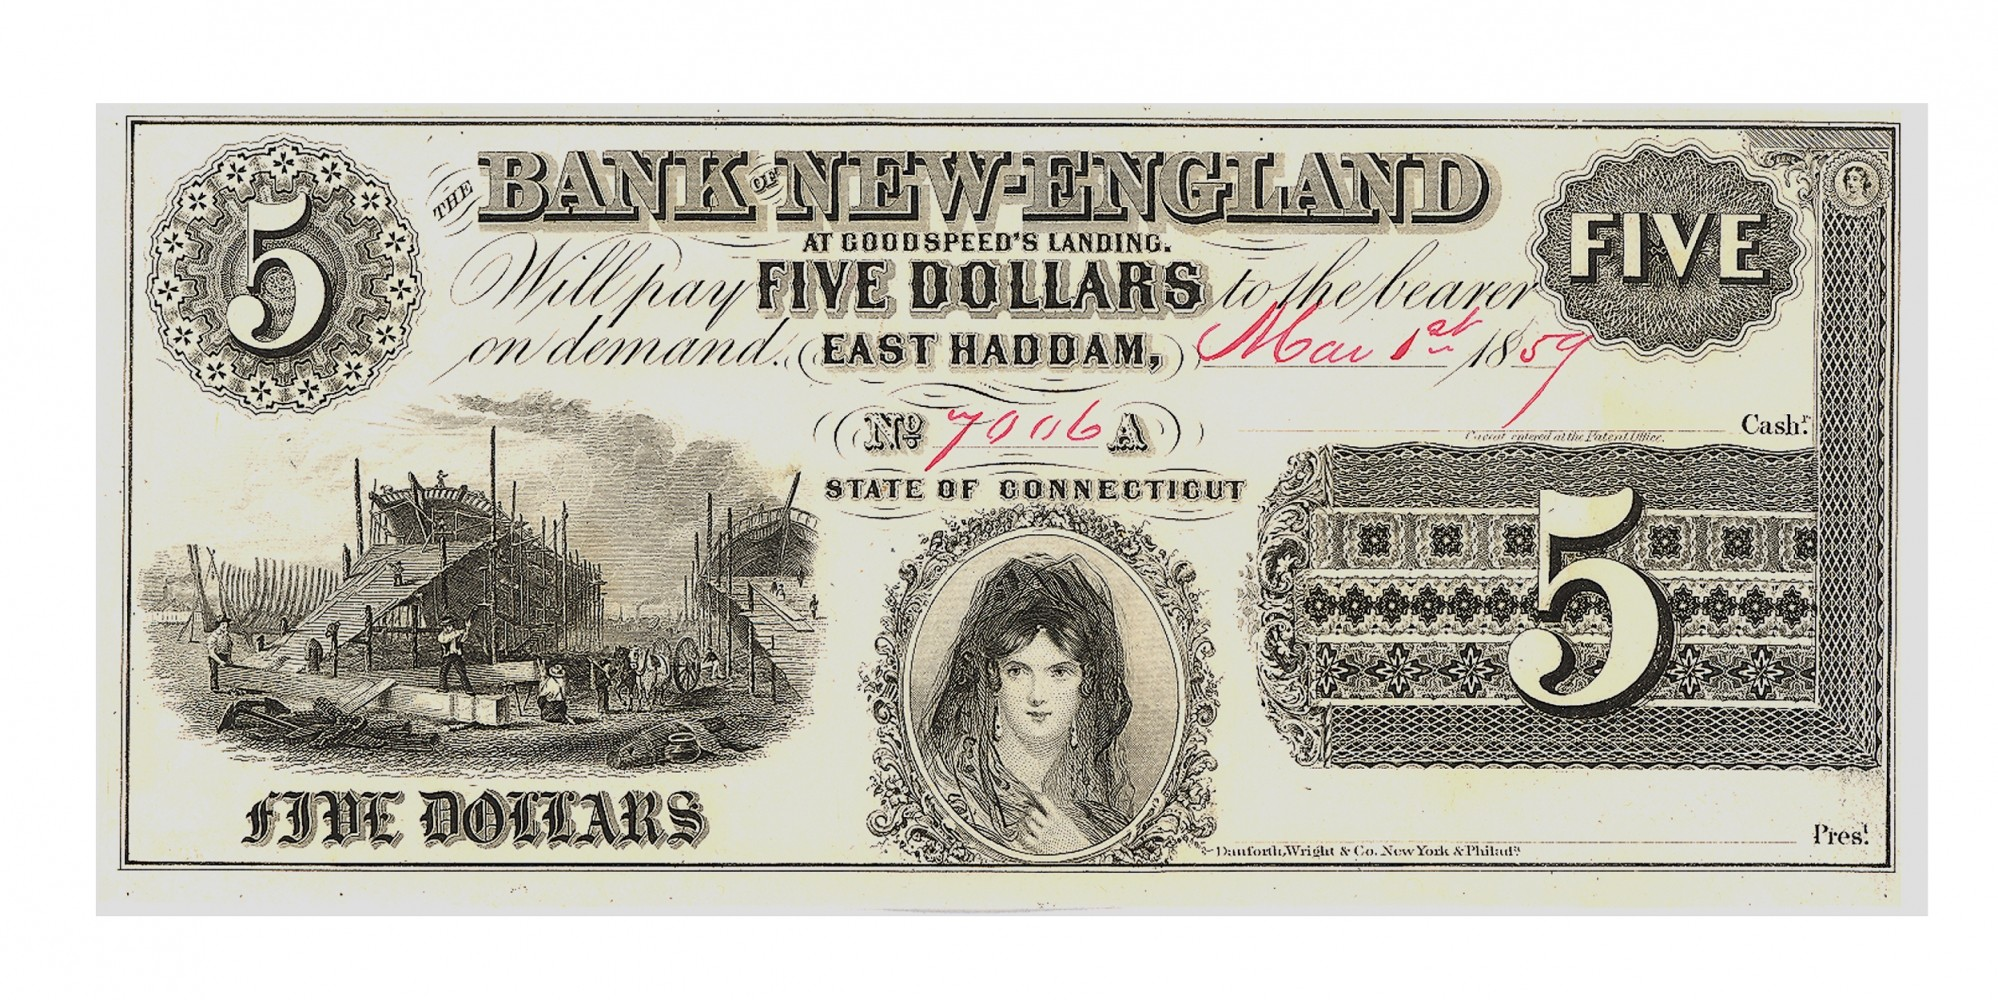 THE BANK OF NEW ENGLAND $5 NOTE